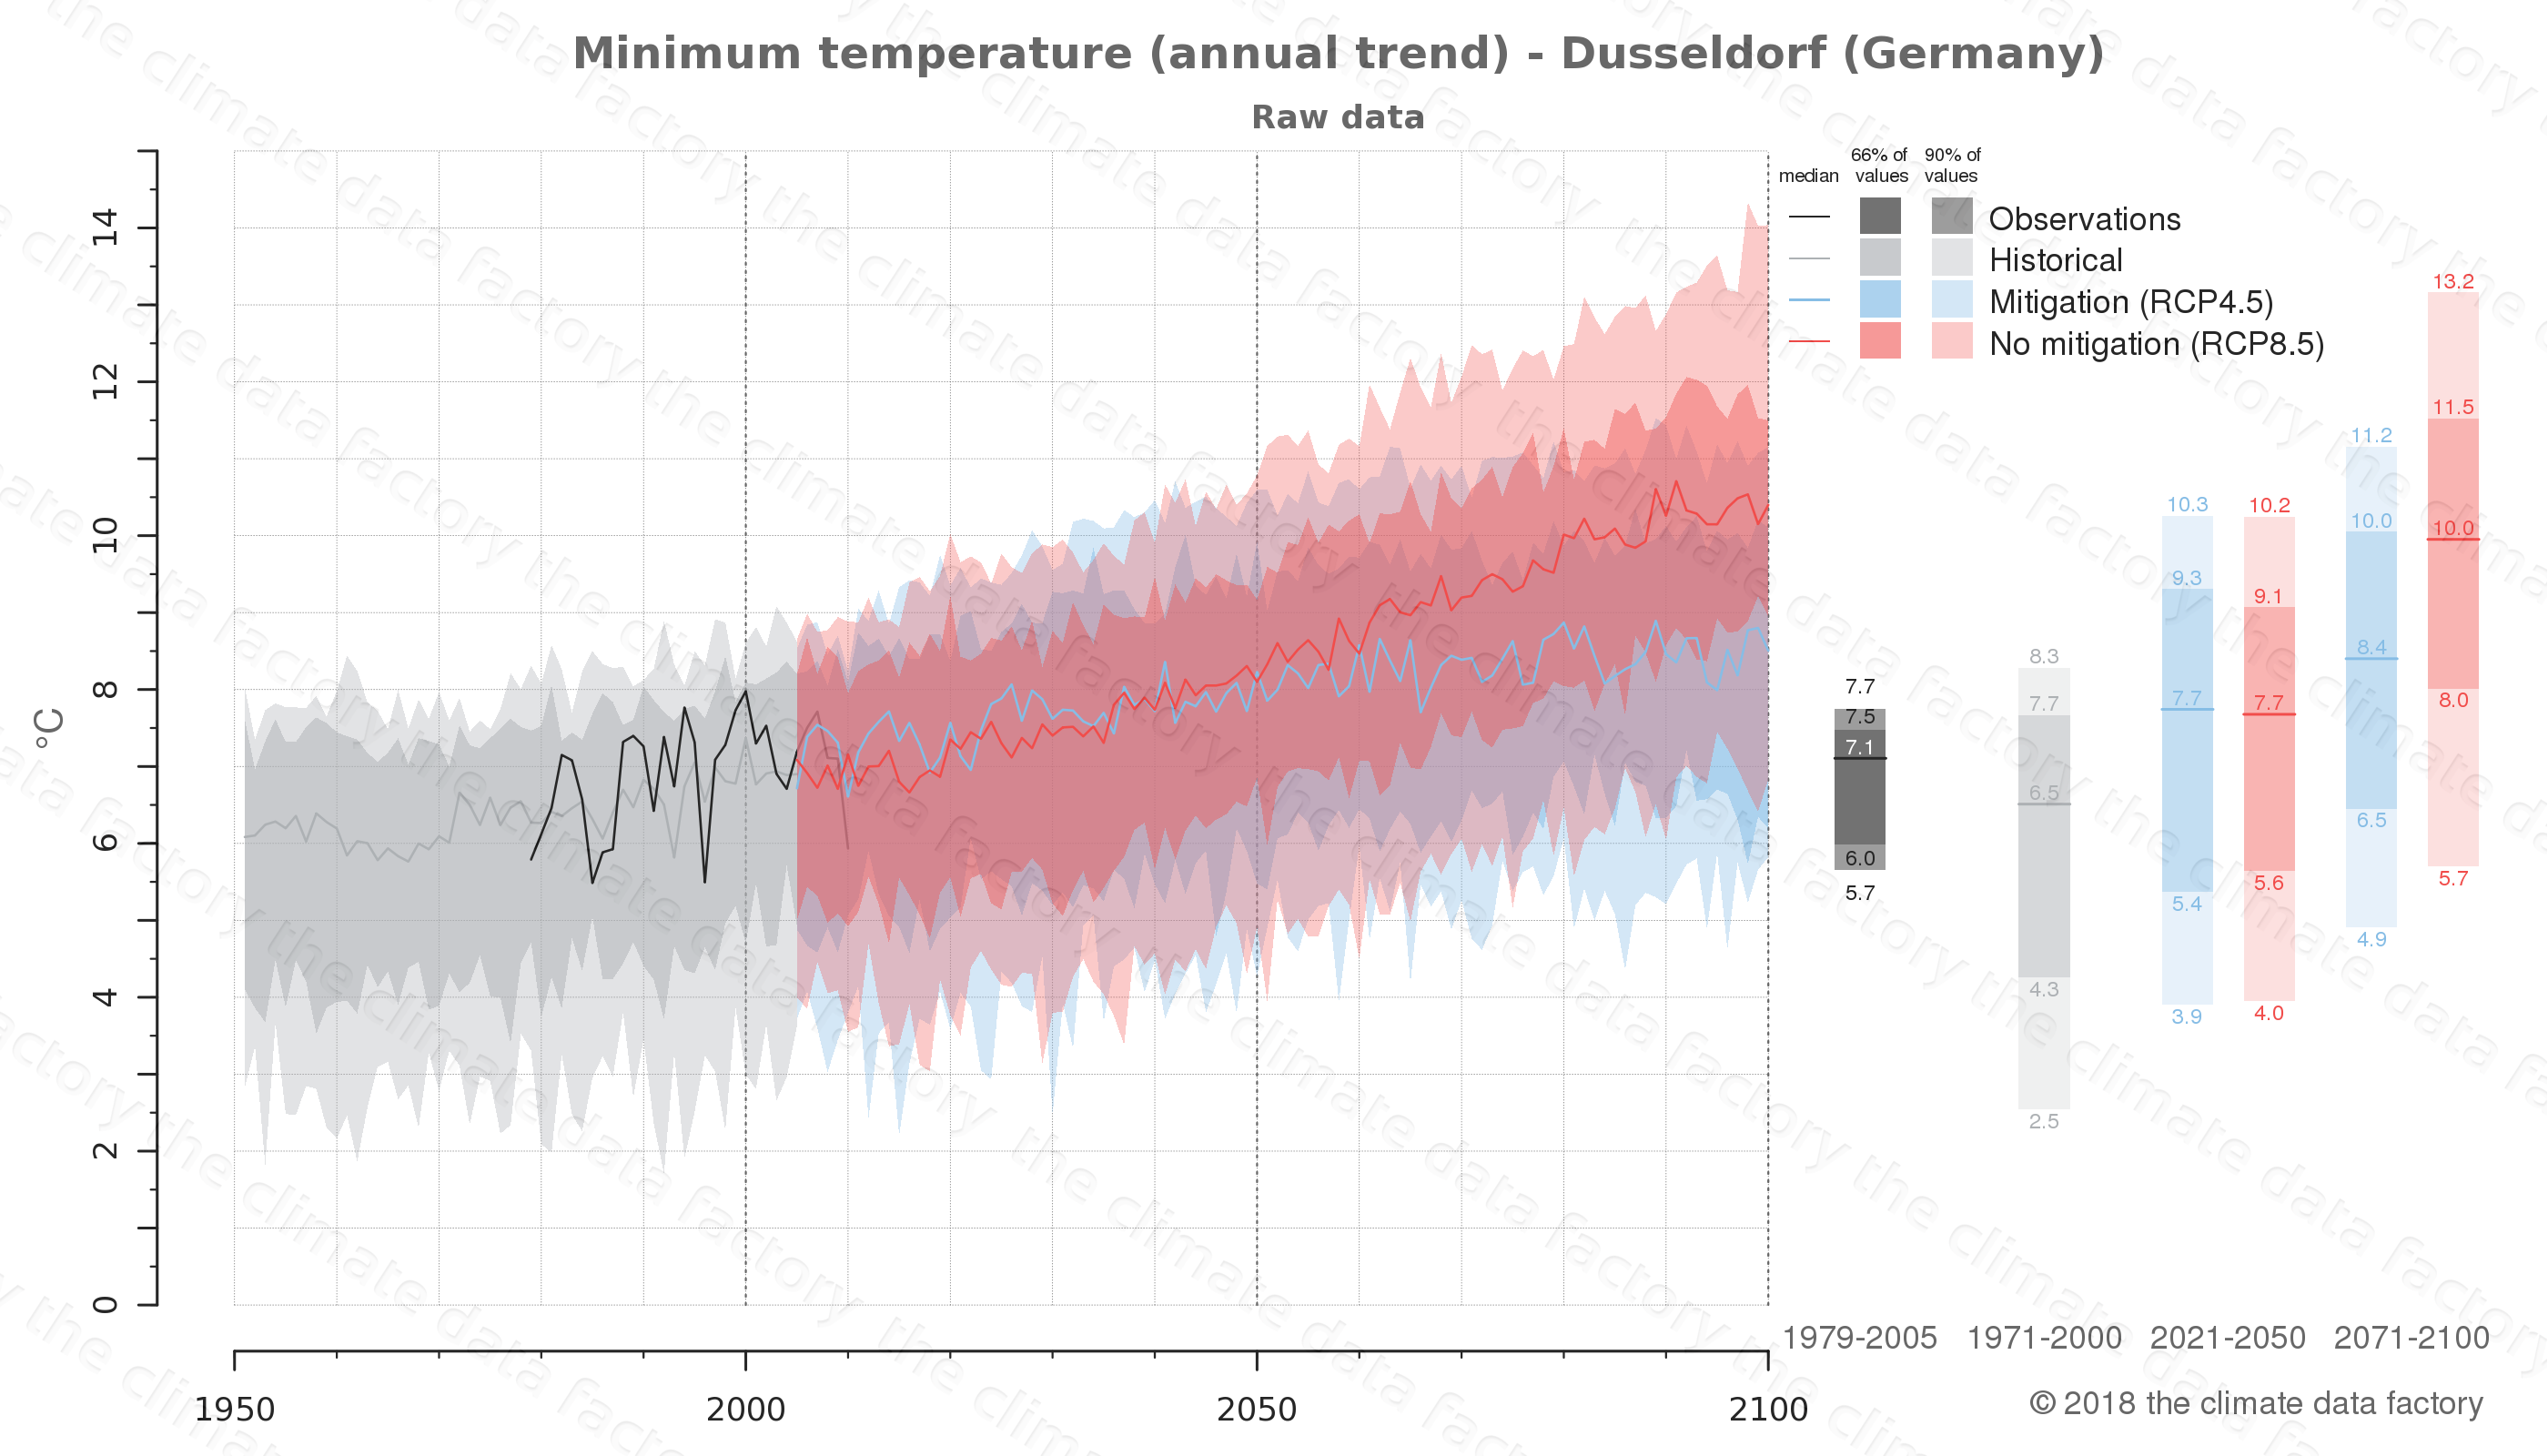 climate change data policy adaptation climate graph city data minimum-temperature dusseldorf germany